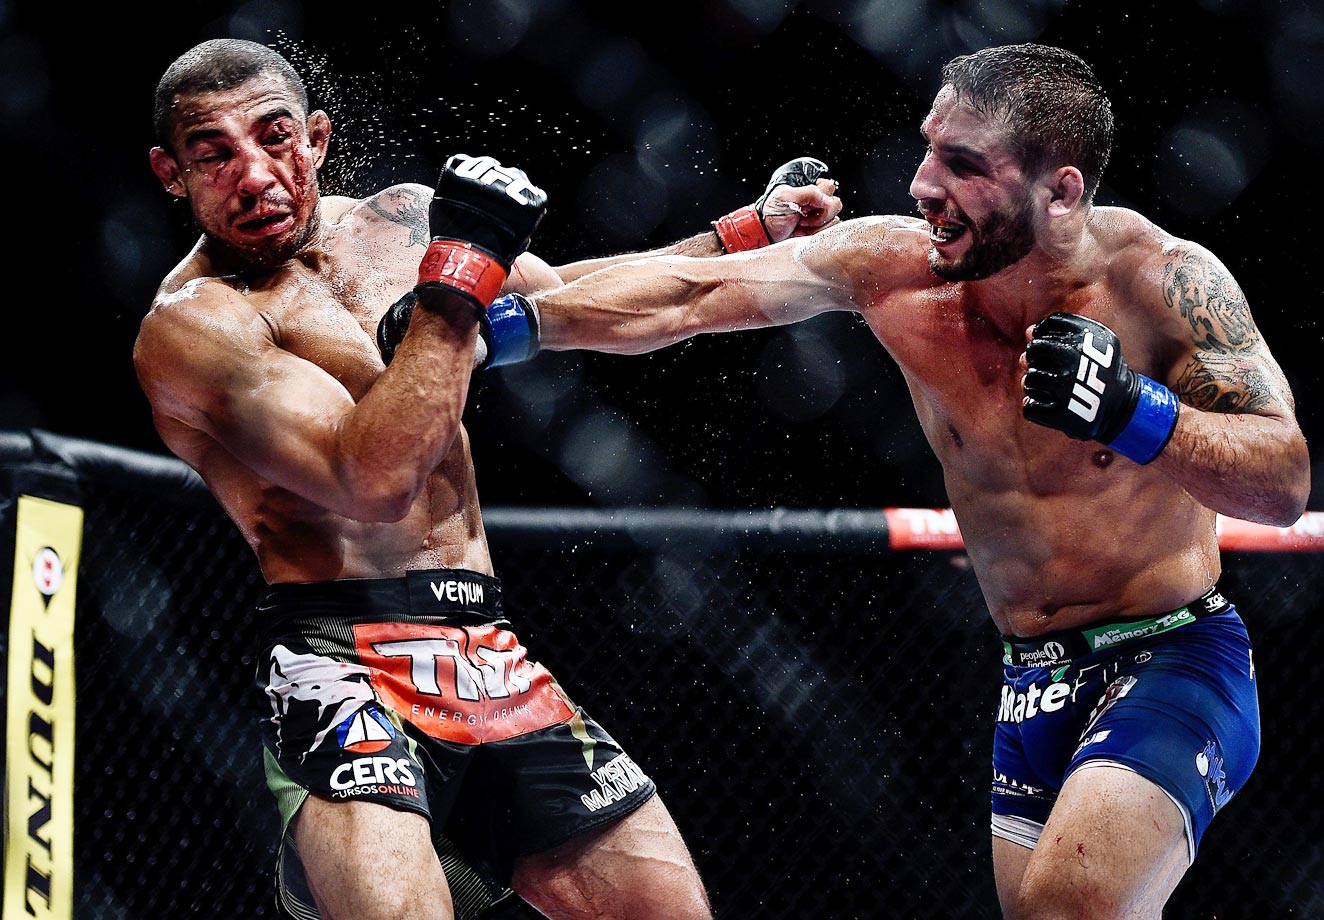 Chad Mendes of the U.S. and Jose Aldo of Brazil in their featherweight championship bout during UFC 179 on Saturday.